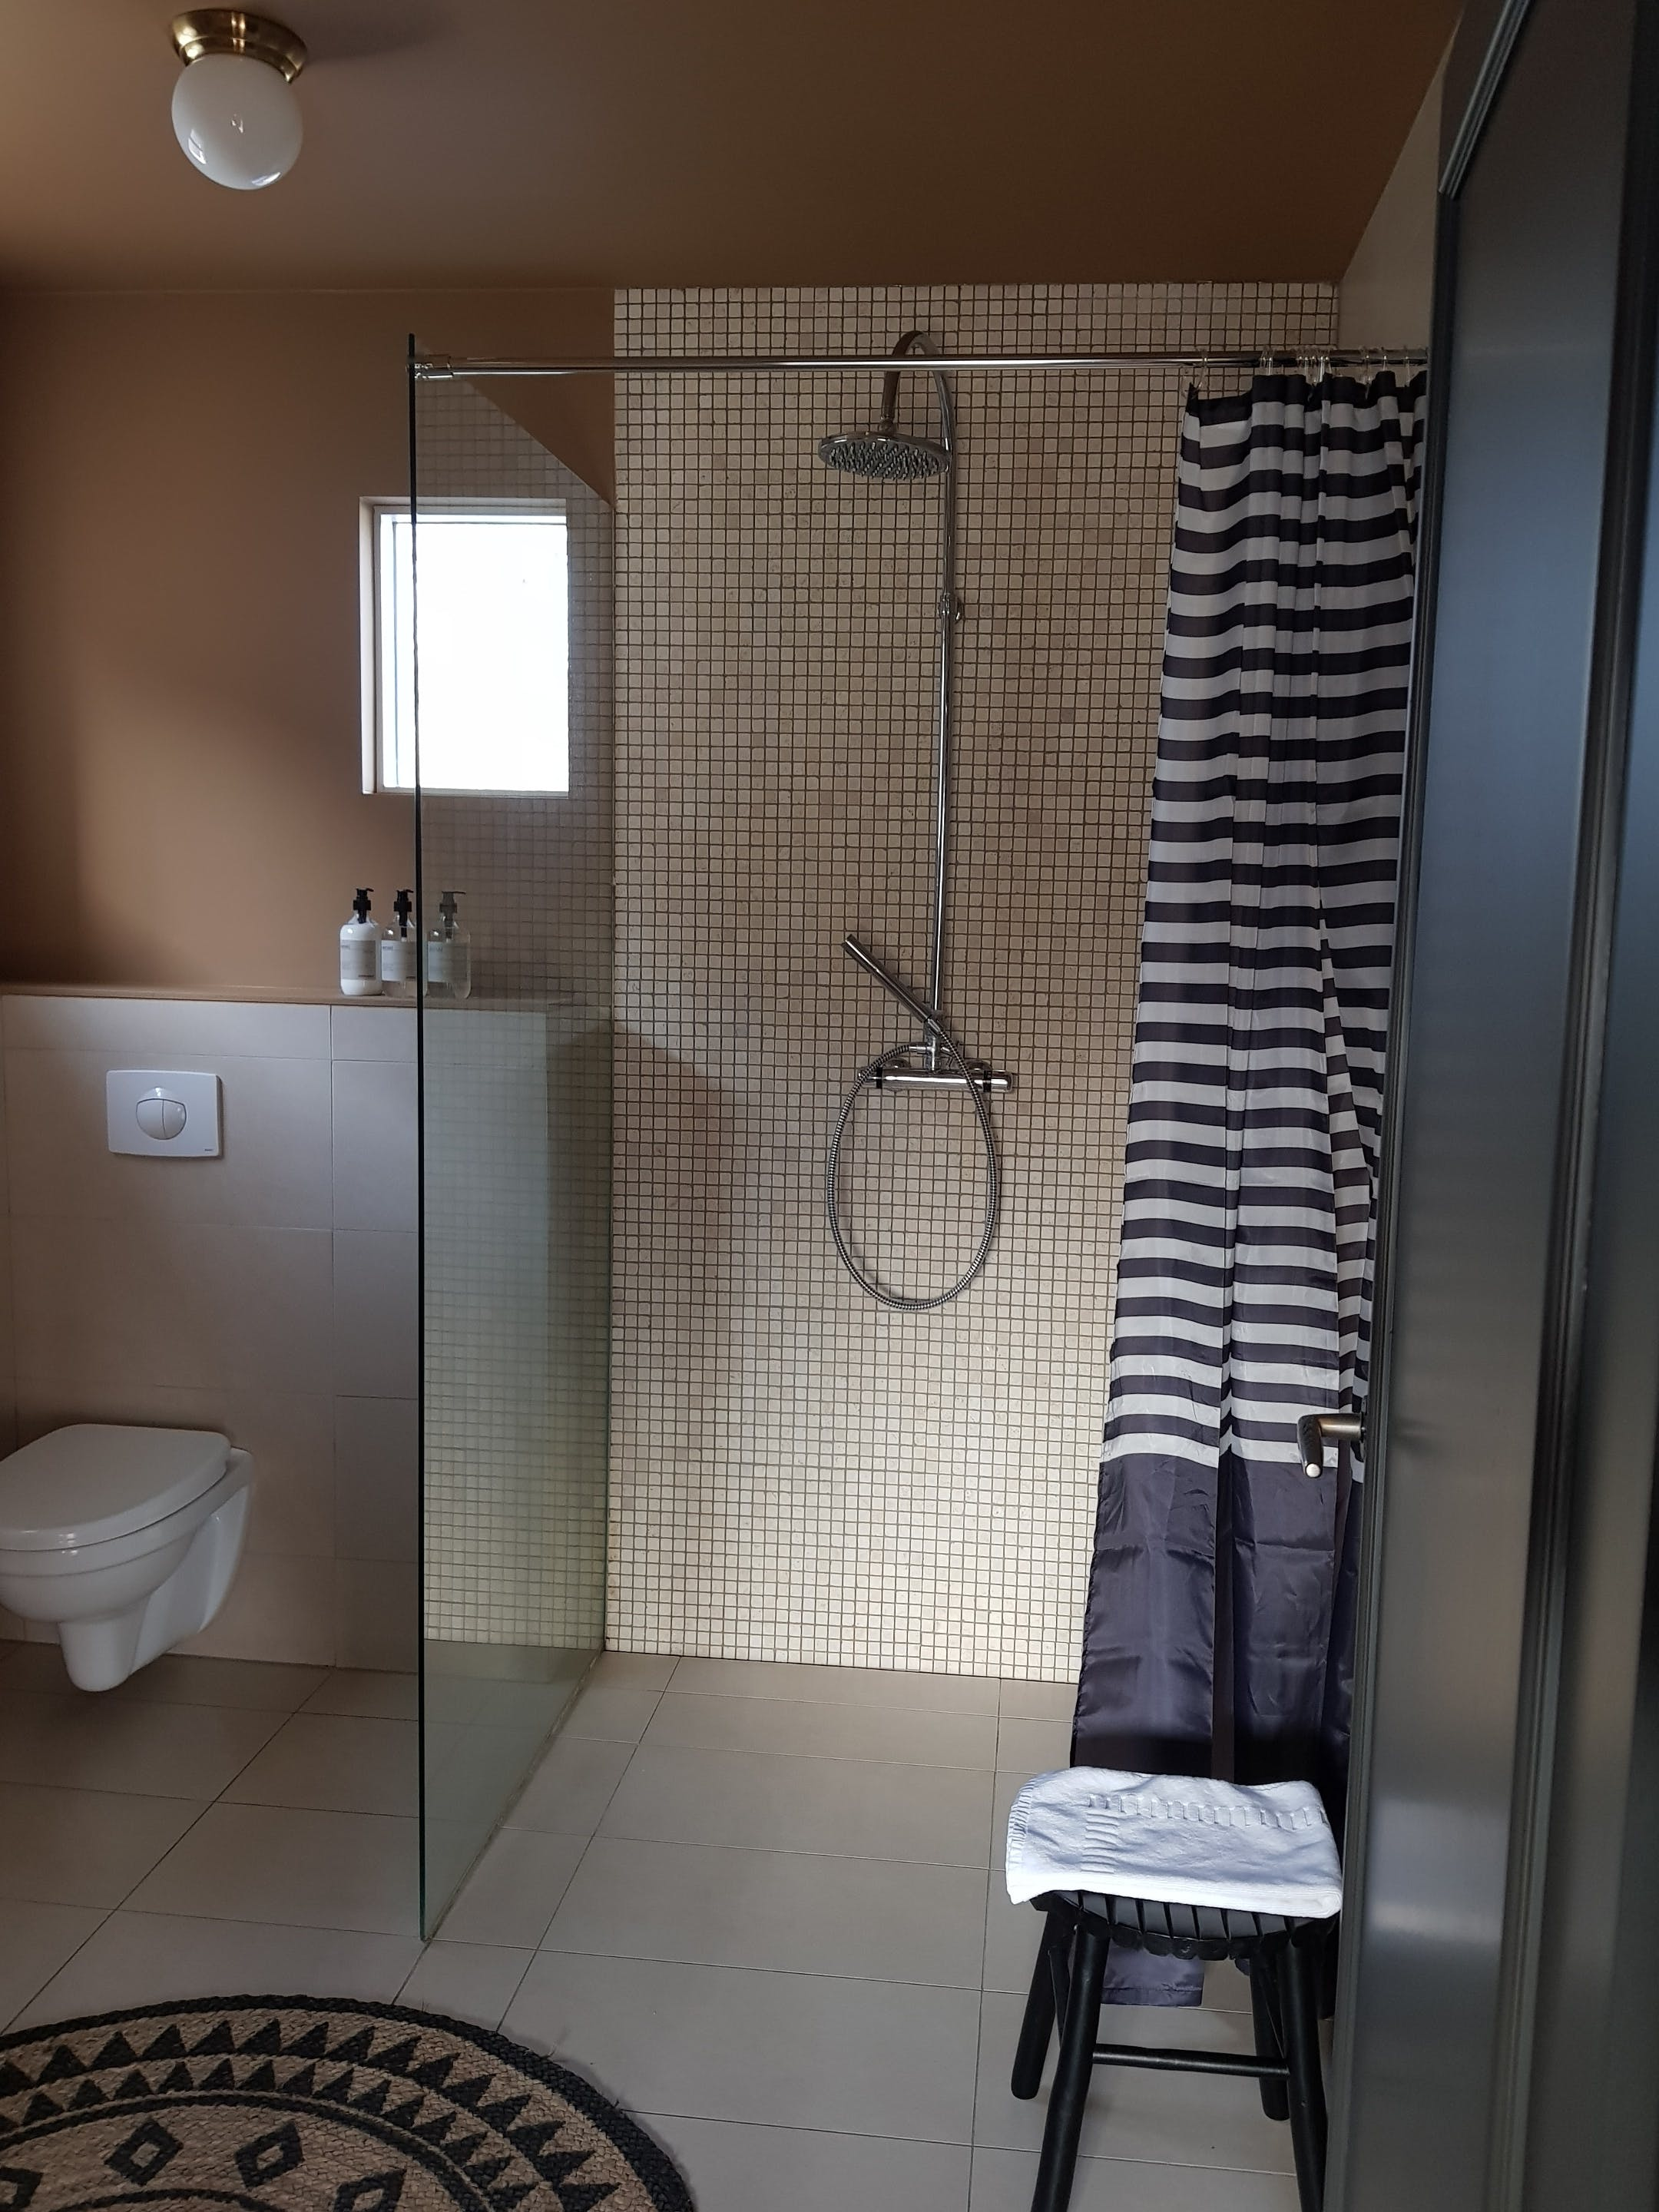 INNI 4 - Spacious bathroom